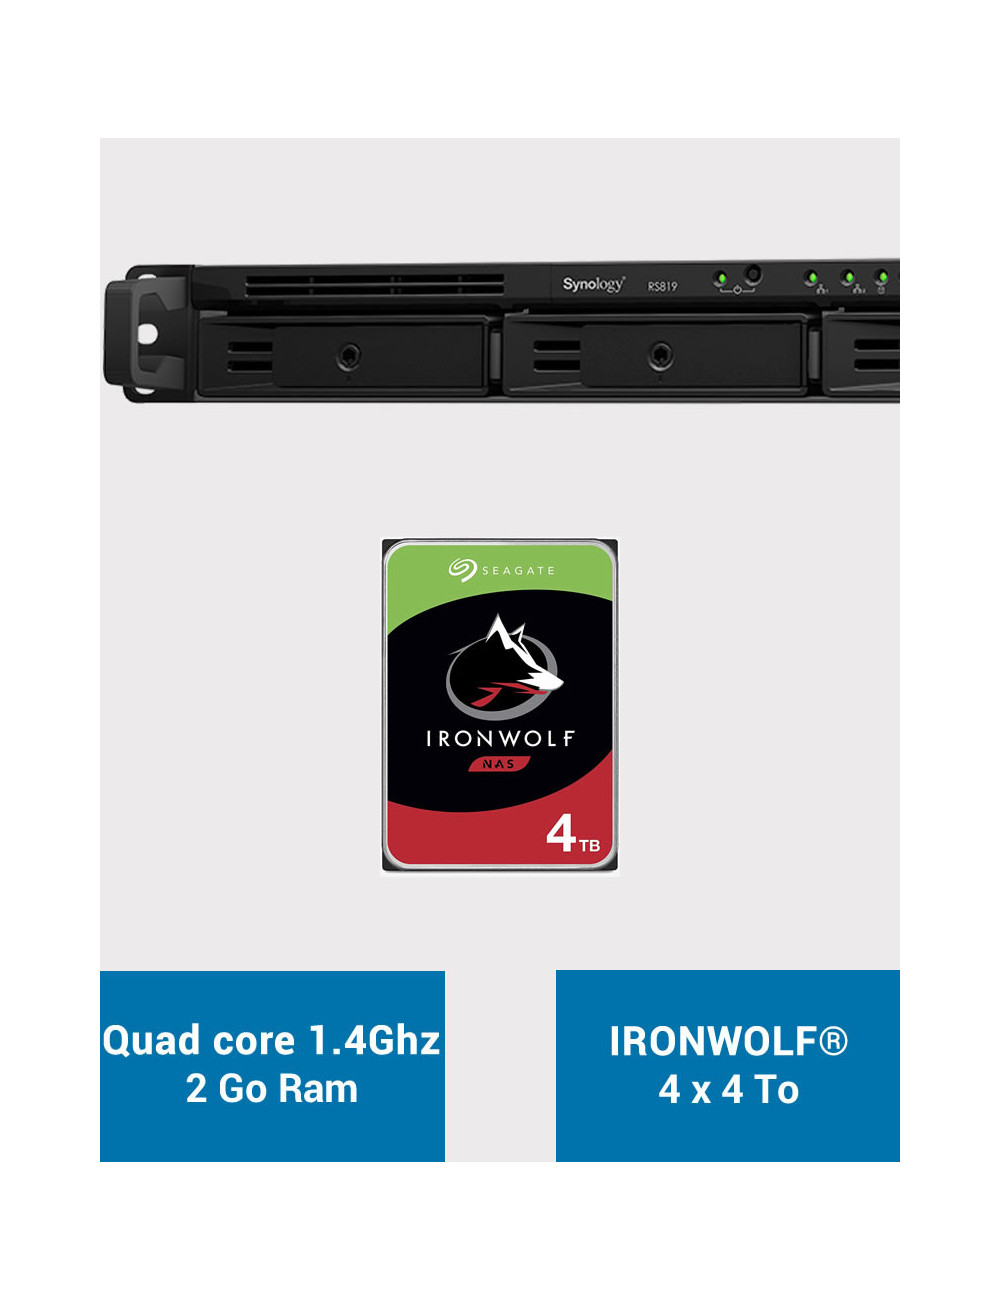 Synology RS819 Serveur NAS IRONWOLF 16To (4x4To)